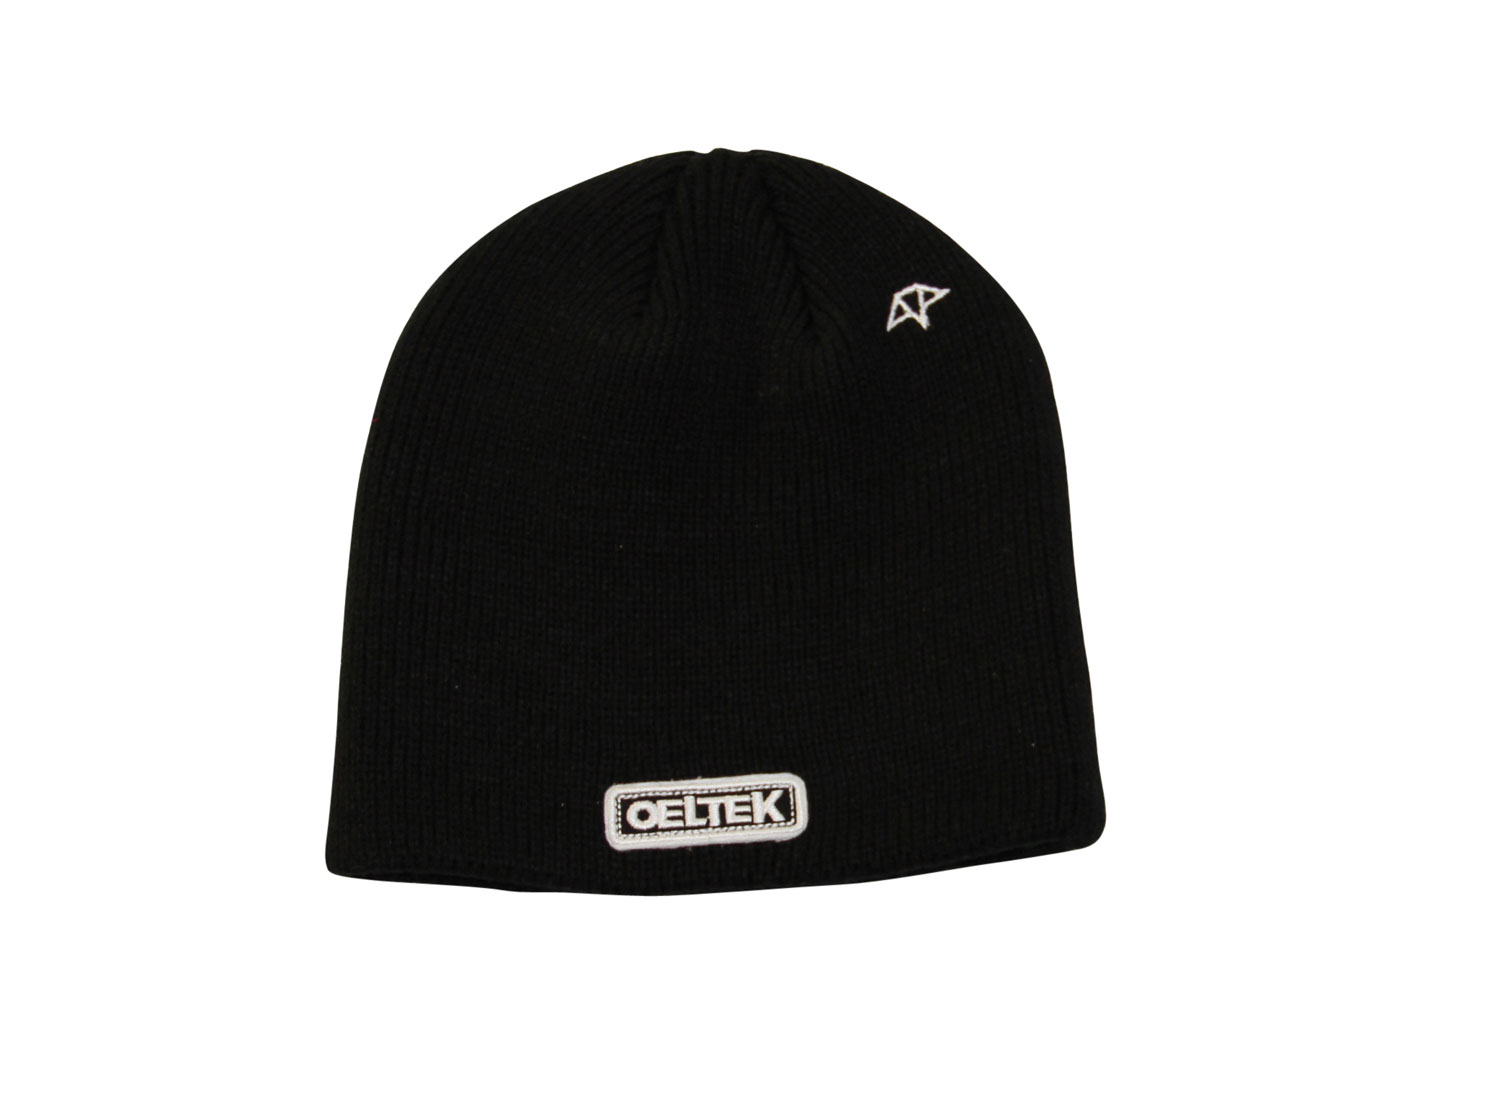 Key Features of the Celtek Mule Beanie: 100% Acrylic Knit Beanie Embroidered Patch and Logo Hit - $13.95